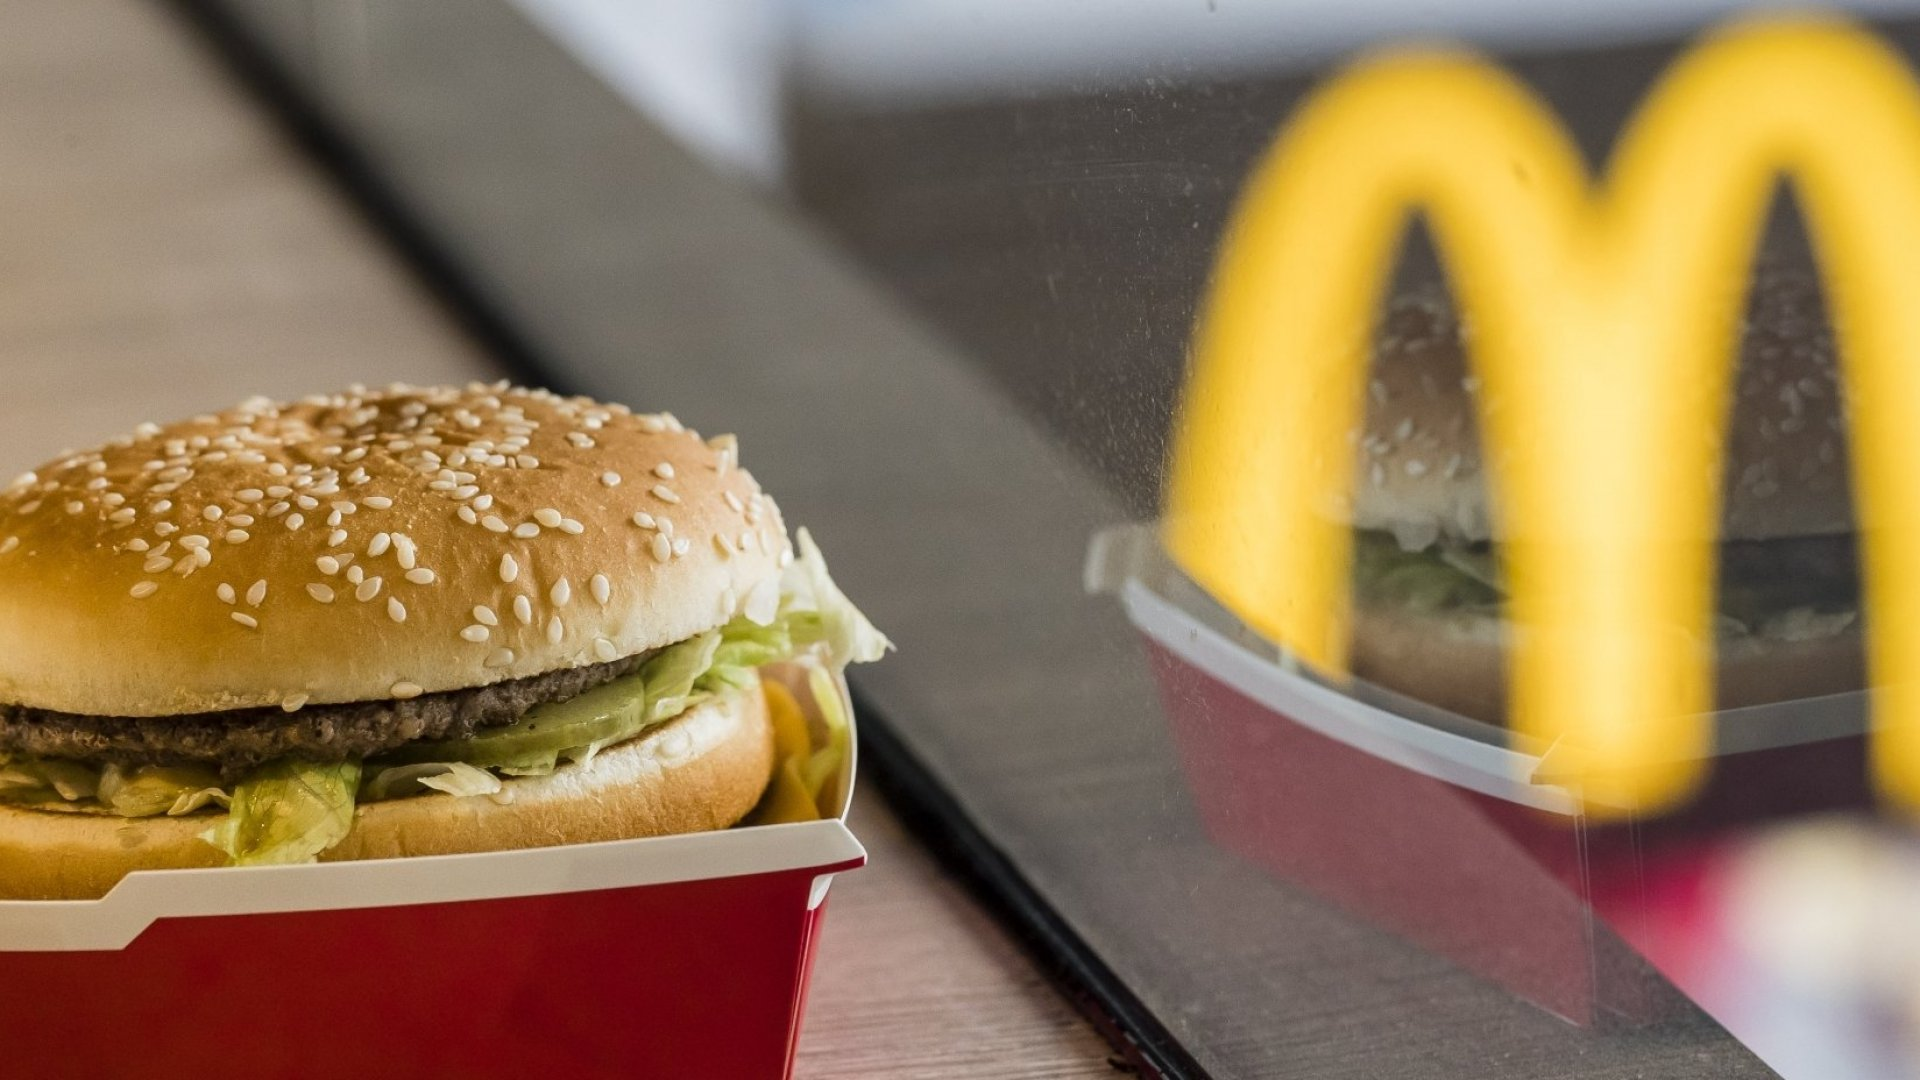 Police Arrested a Man in a McDonald's Parking Lot. What the McDonald's Staff Did Next Was Extraordinary